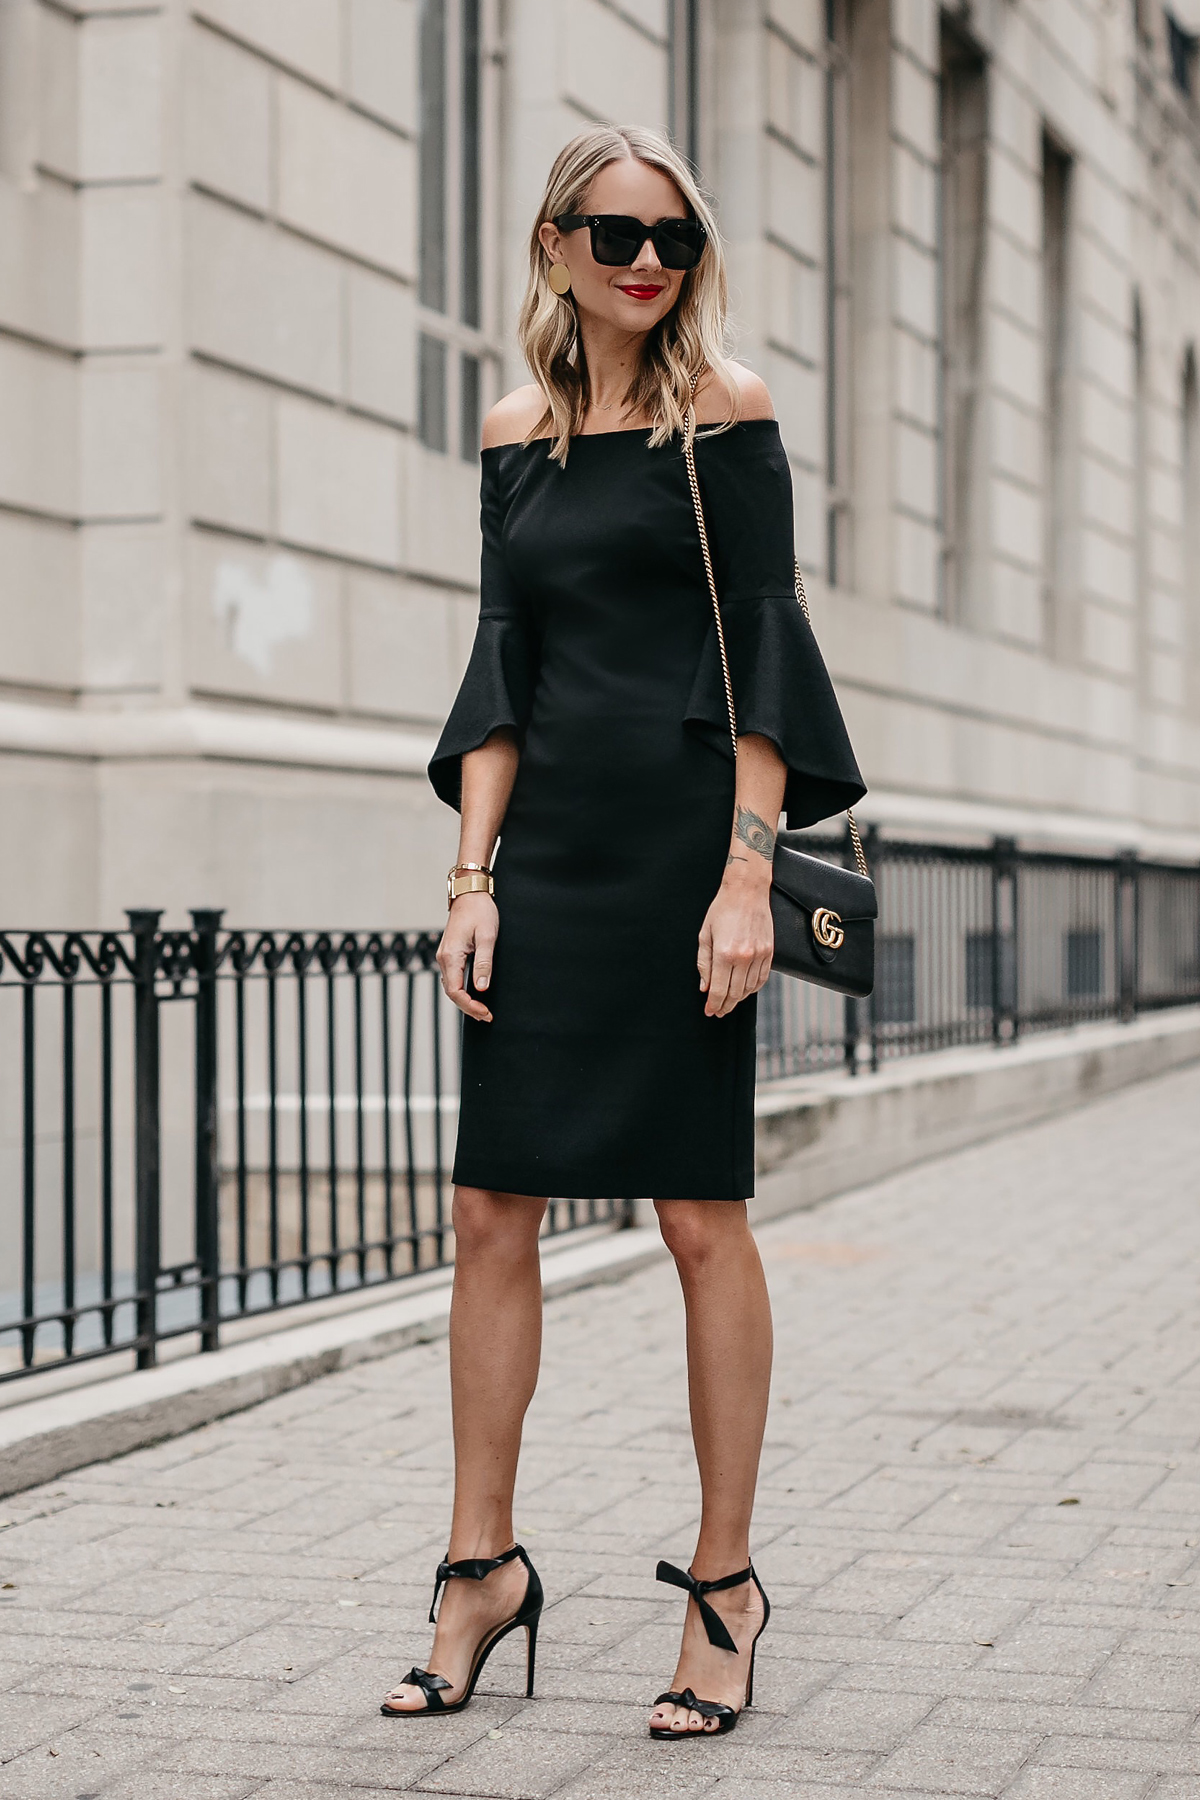 Blonde Woman Wearing Off-the-Shoulder Black Holiday Dress Alexandre Birman Clarita Ankle Tie Black Heels Gucci Marmont Handbag Fashion Jackson Dallas Blogger Fashion Blogger Street Style